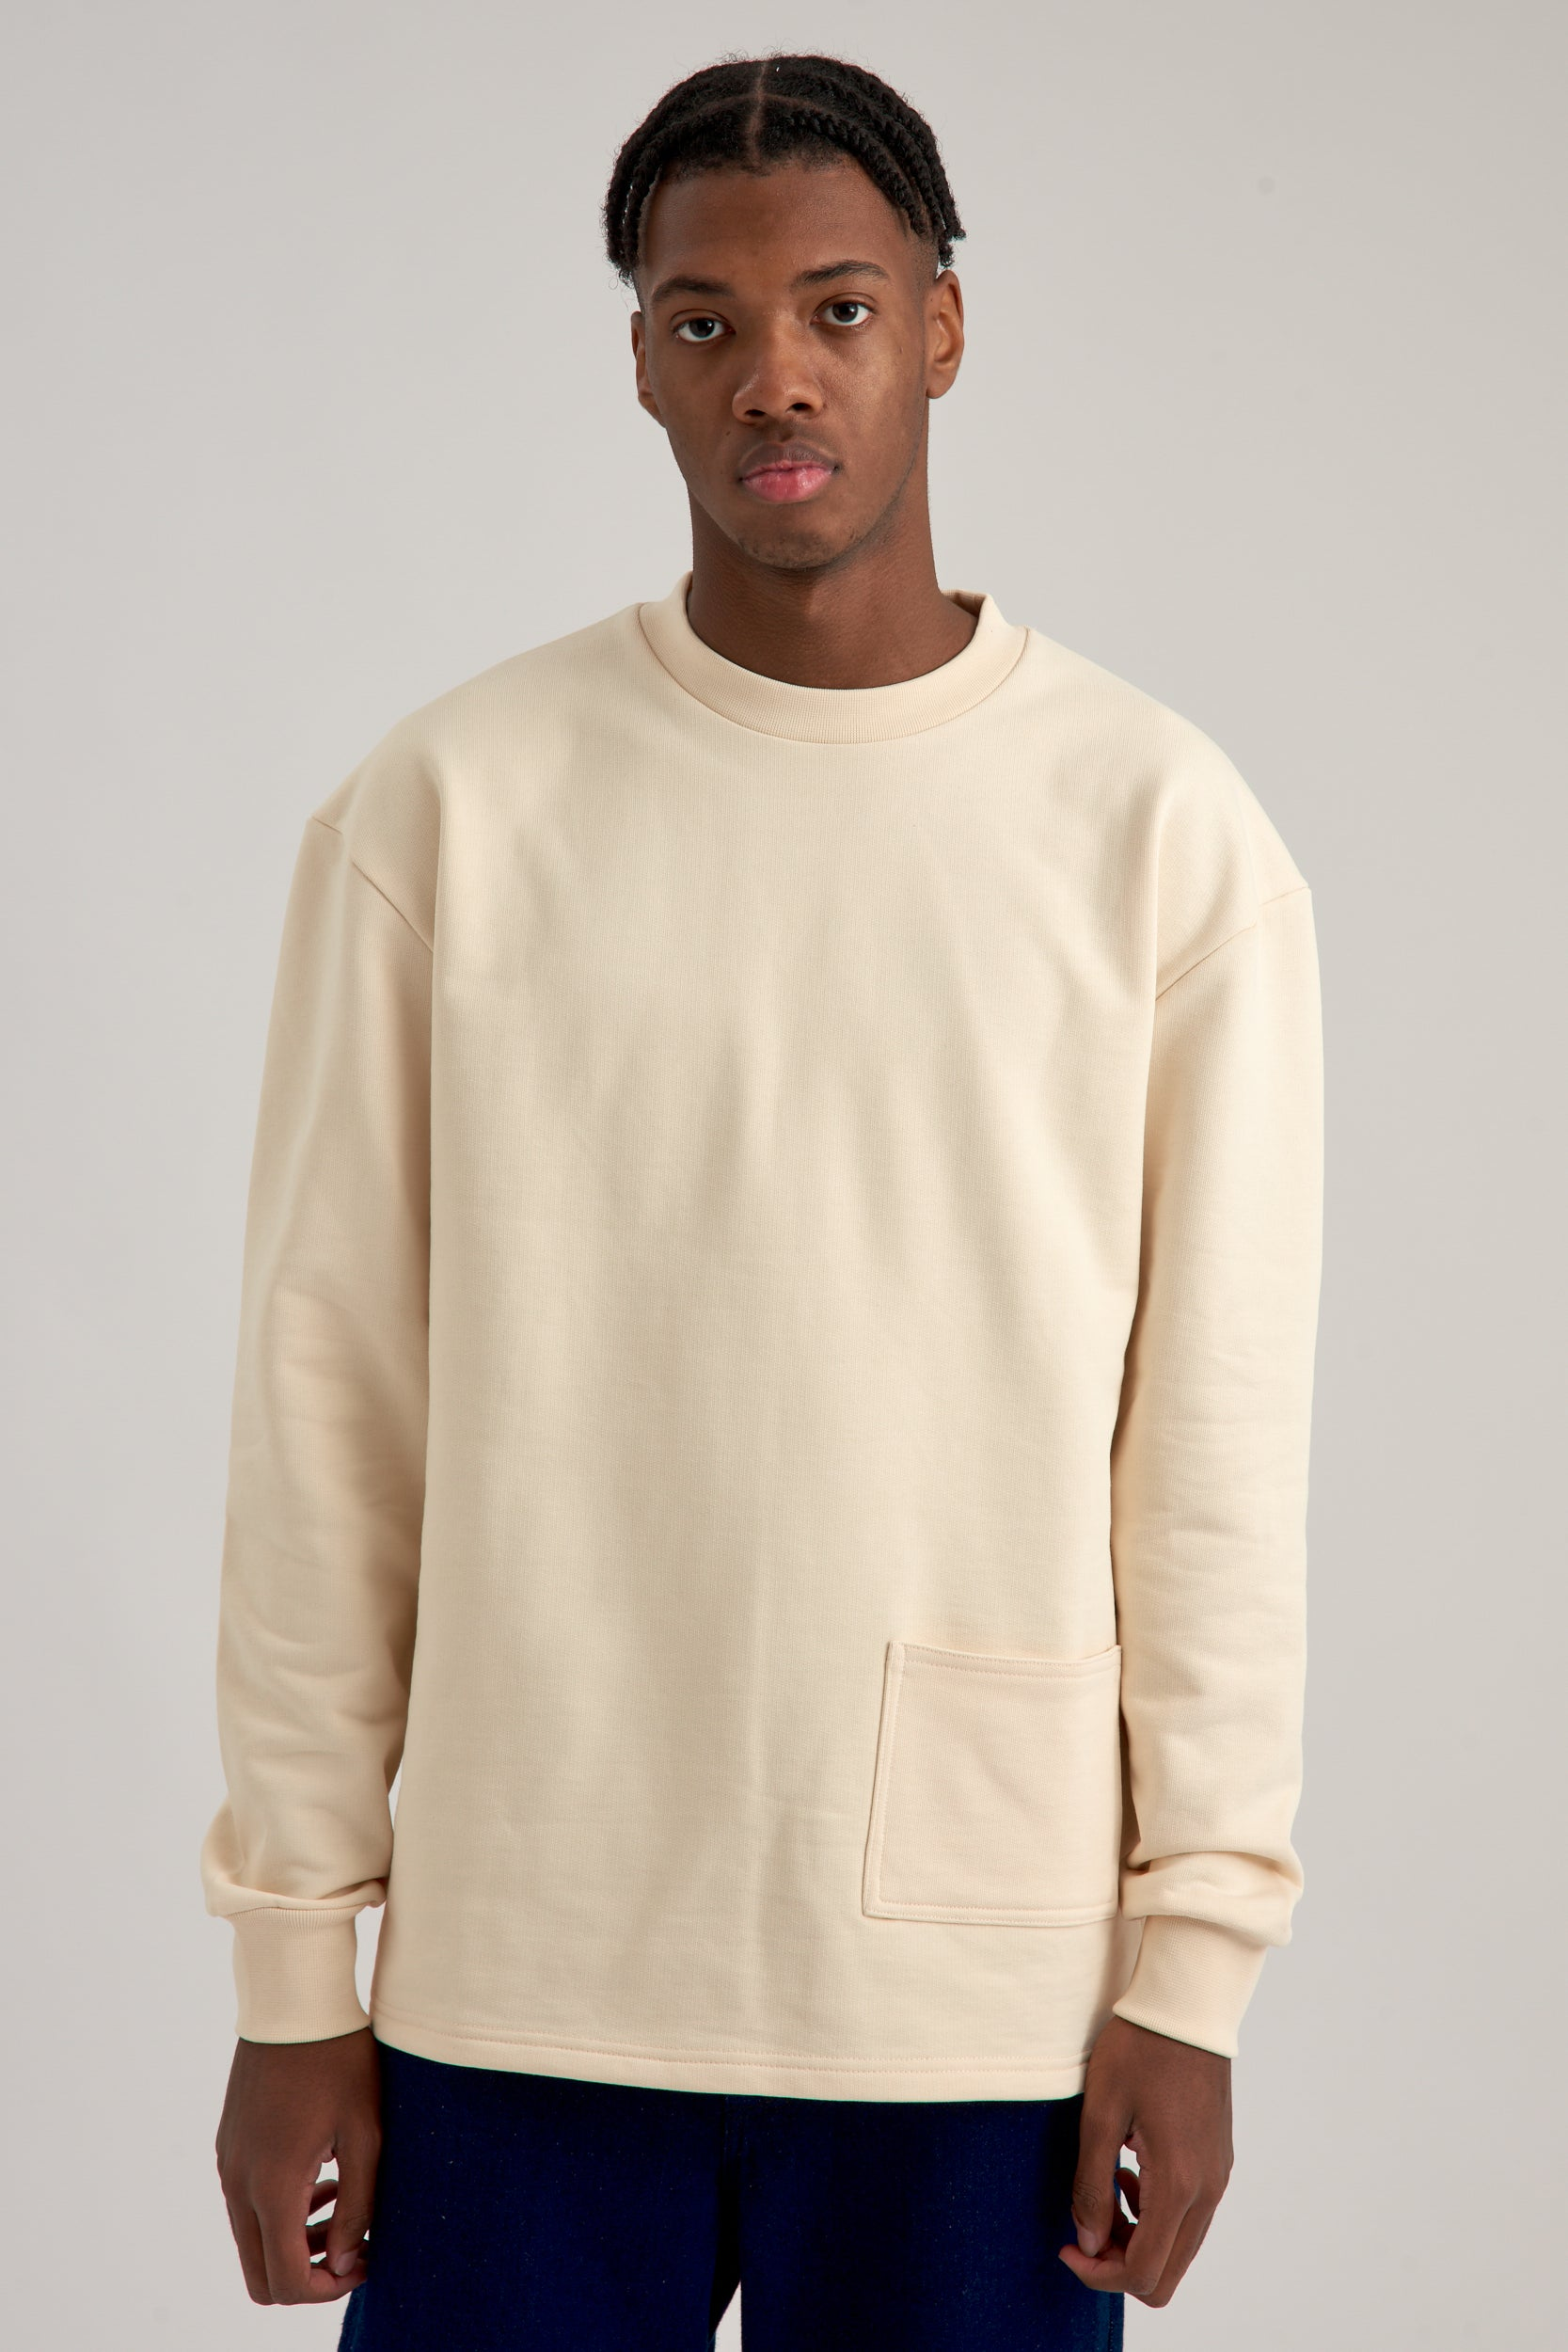 Charles Pocket Cream Sweater